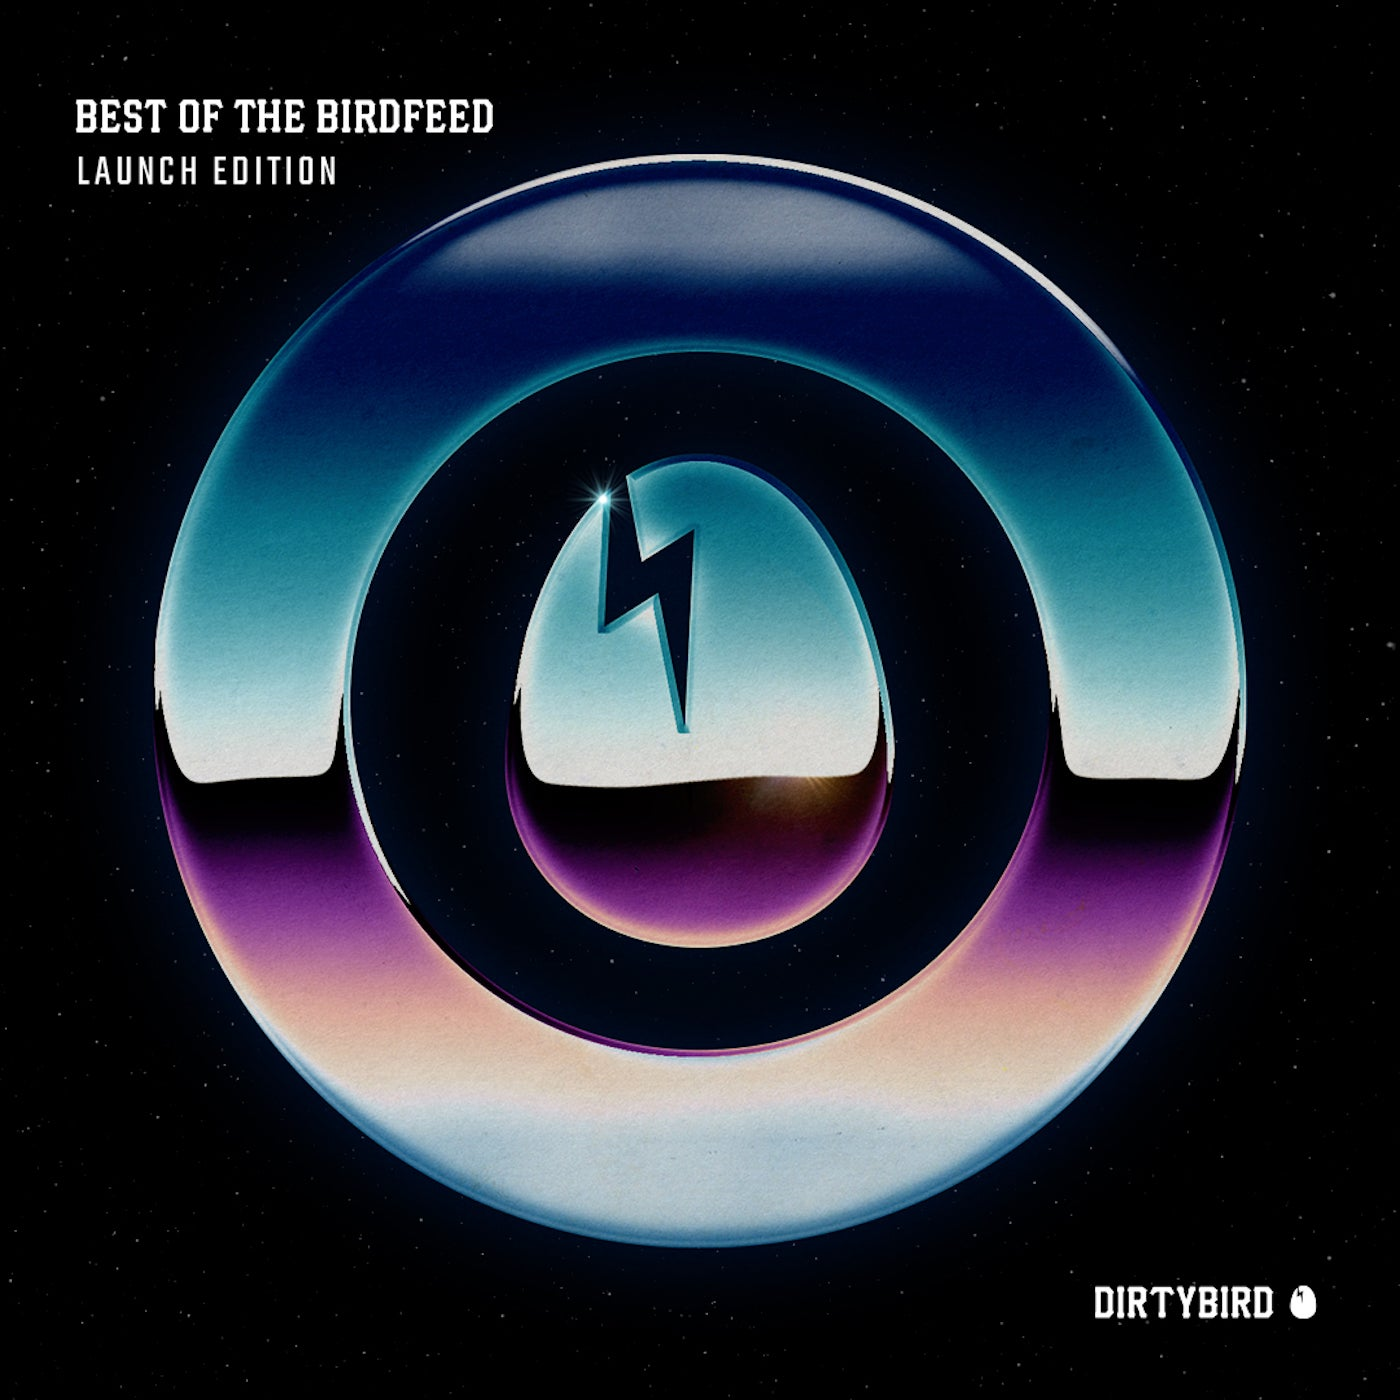 Download Best of the Birdfeed: Launch Edition on Electrobuzz